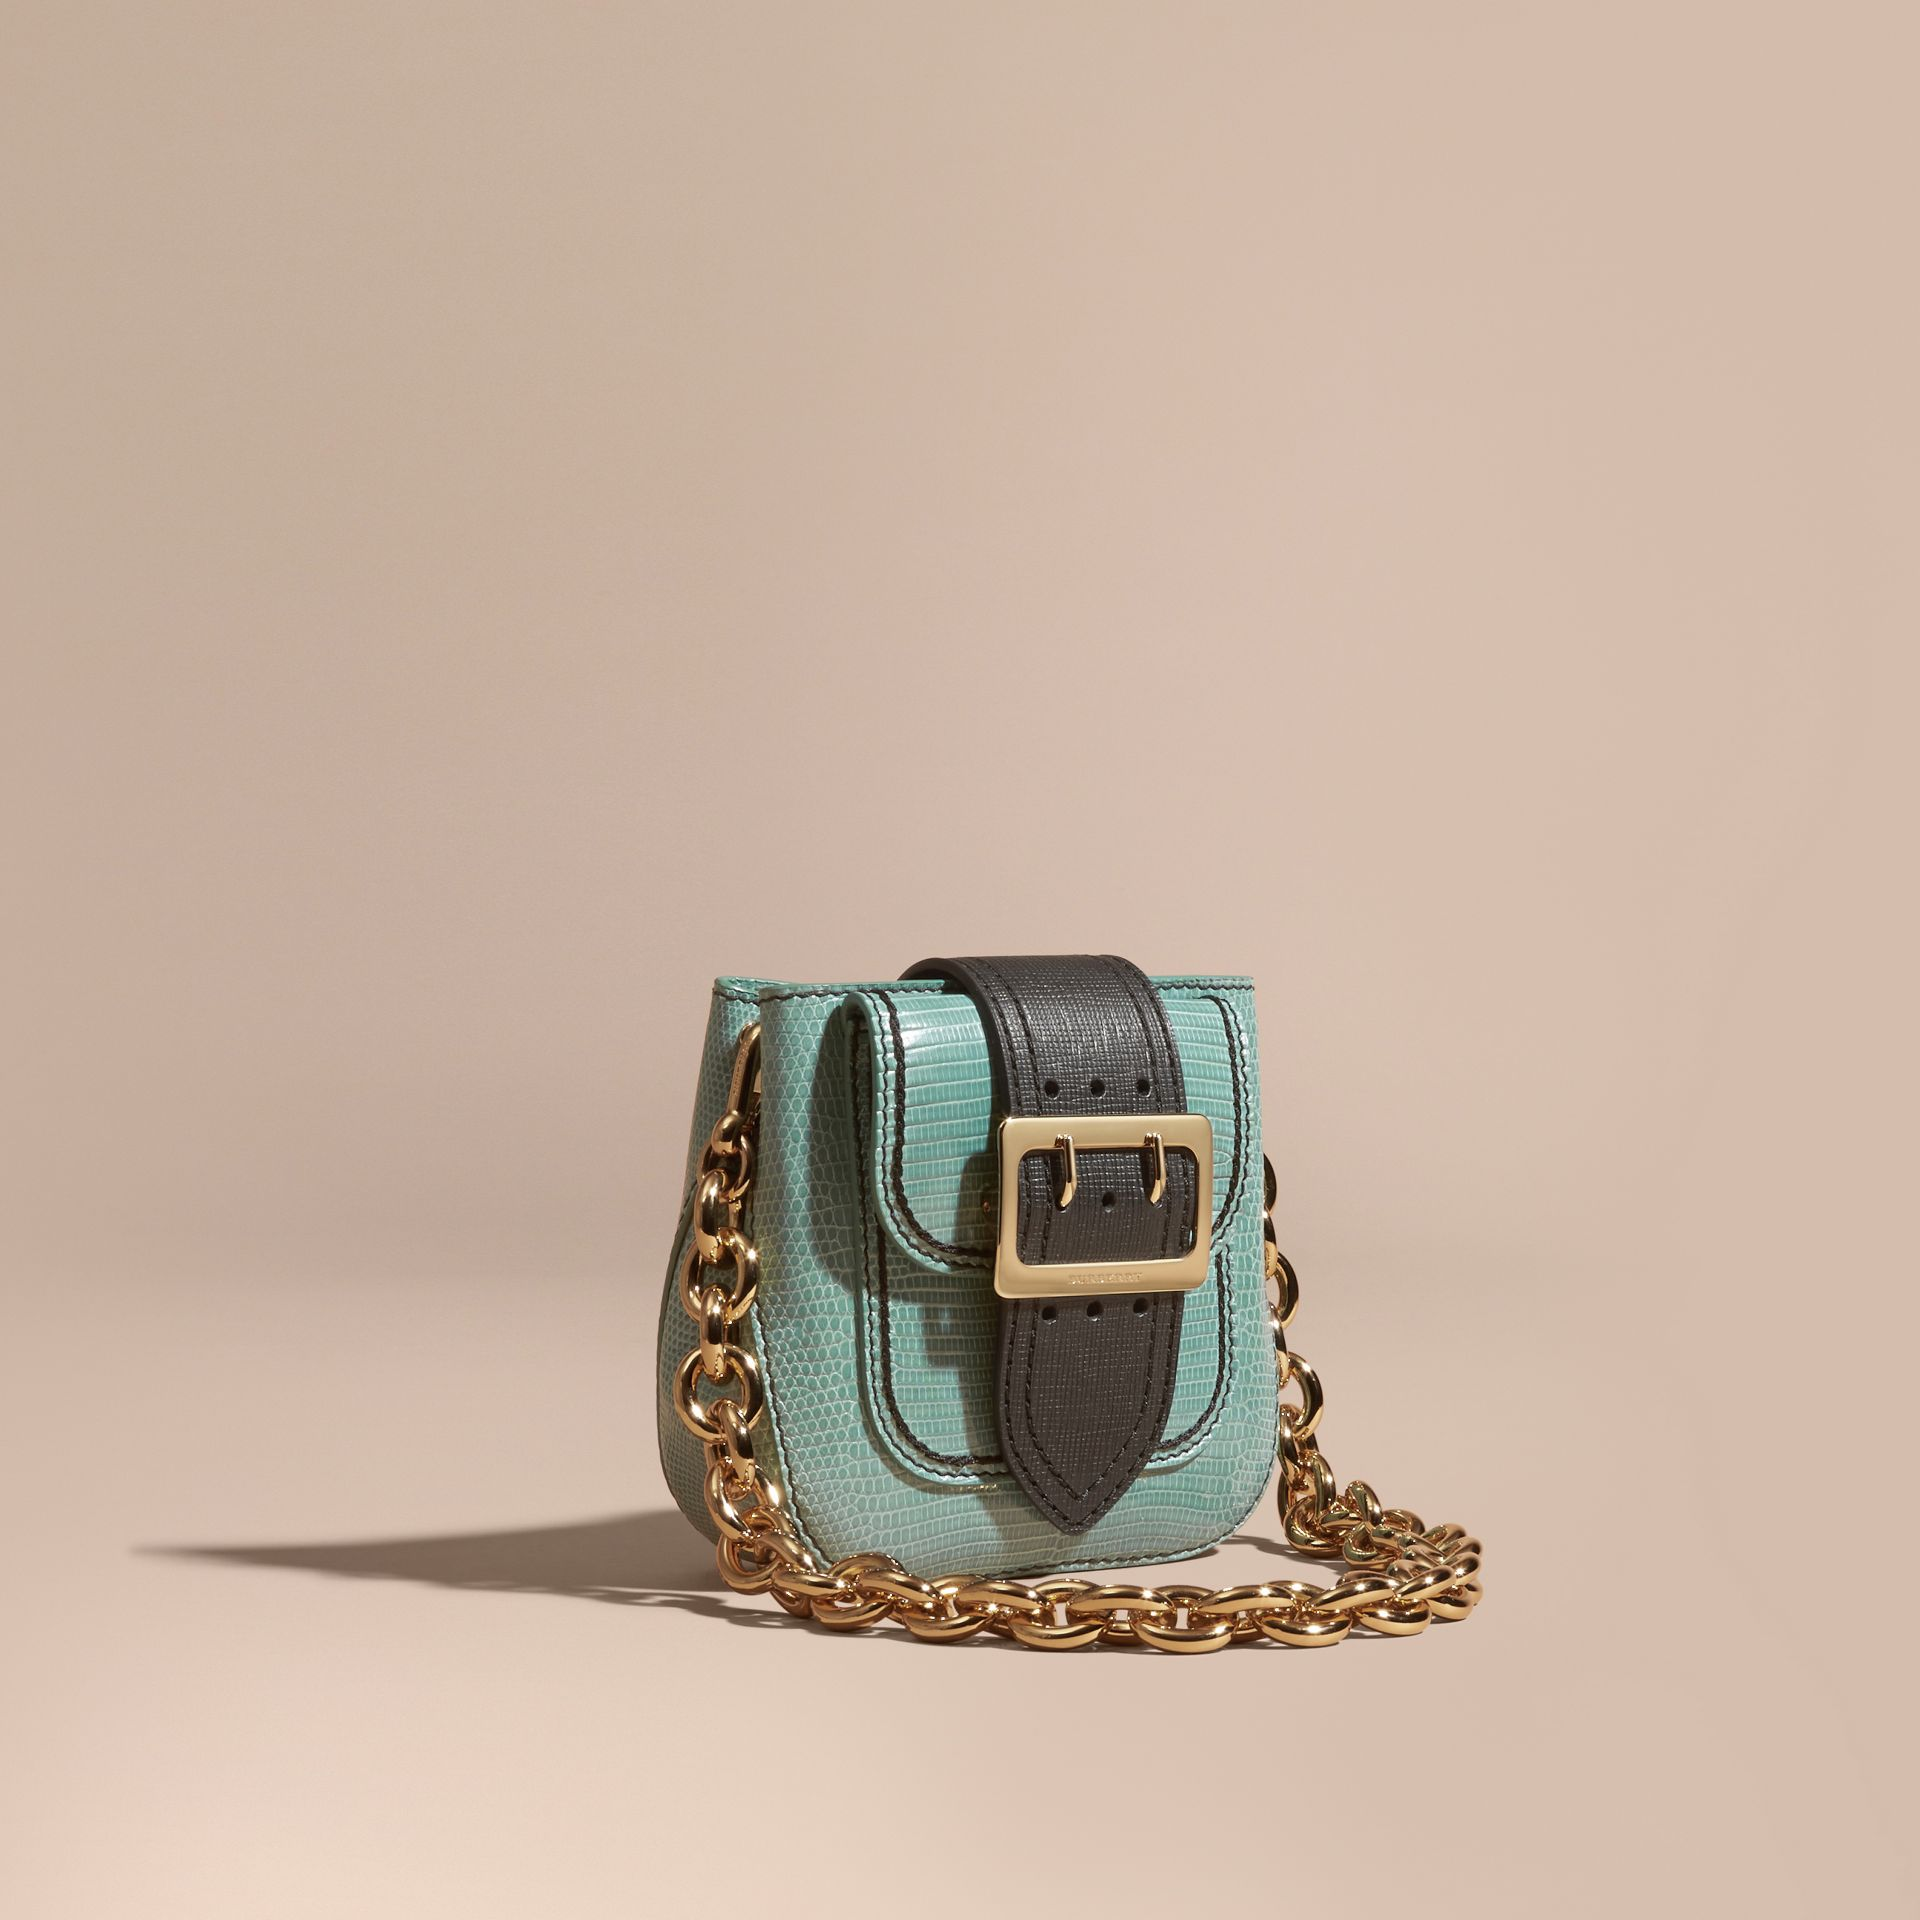 Dusty mint The Small Square Buckle Bag in Lizard - gallery image 1